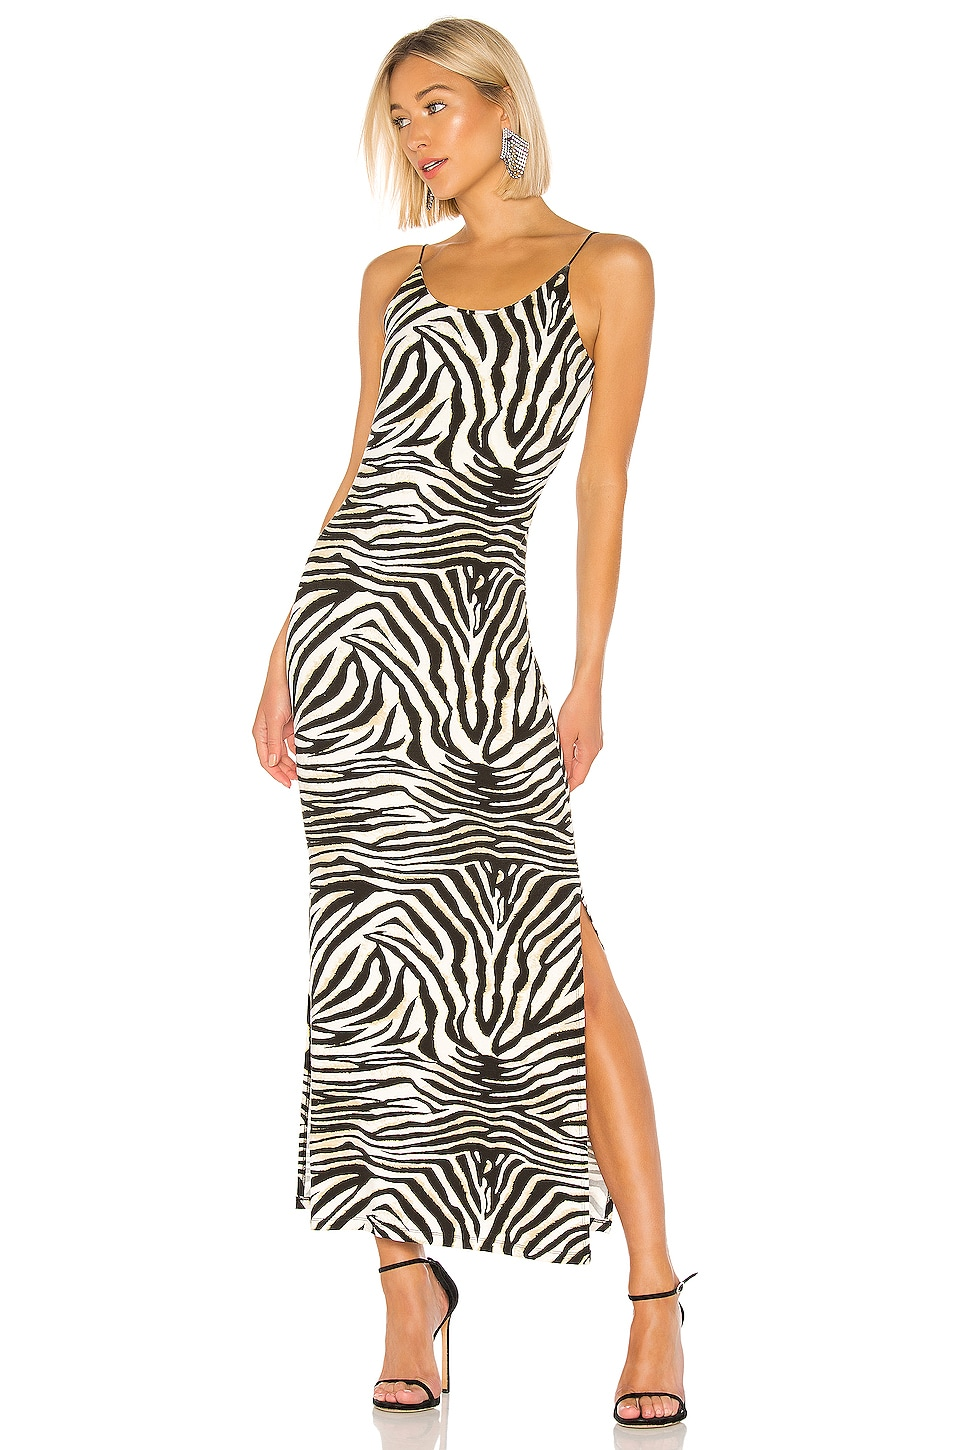 Bardot Zebra Print Dress in Zebra